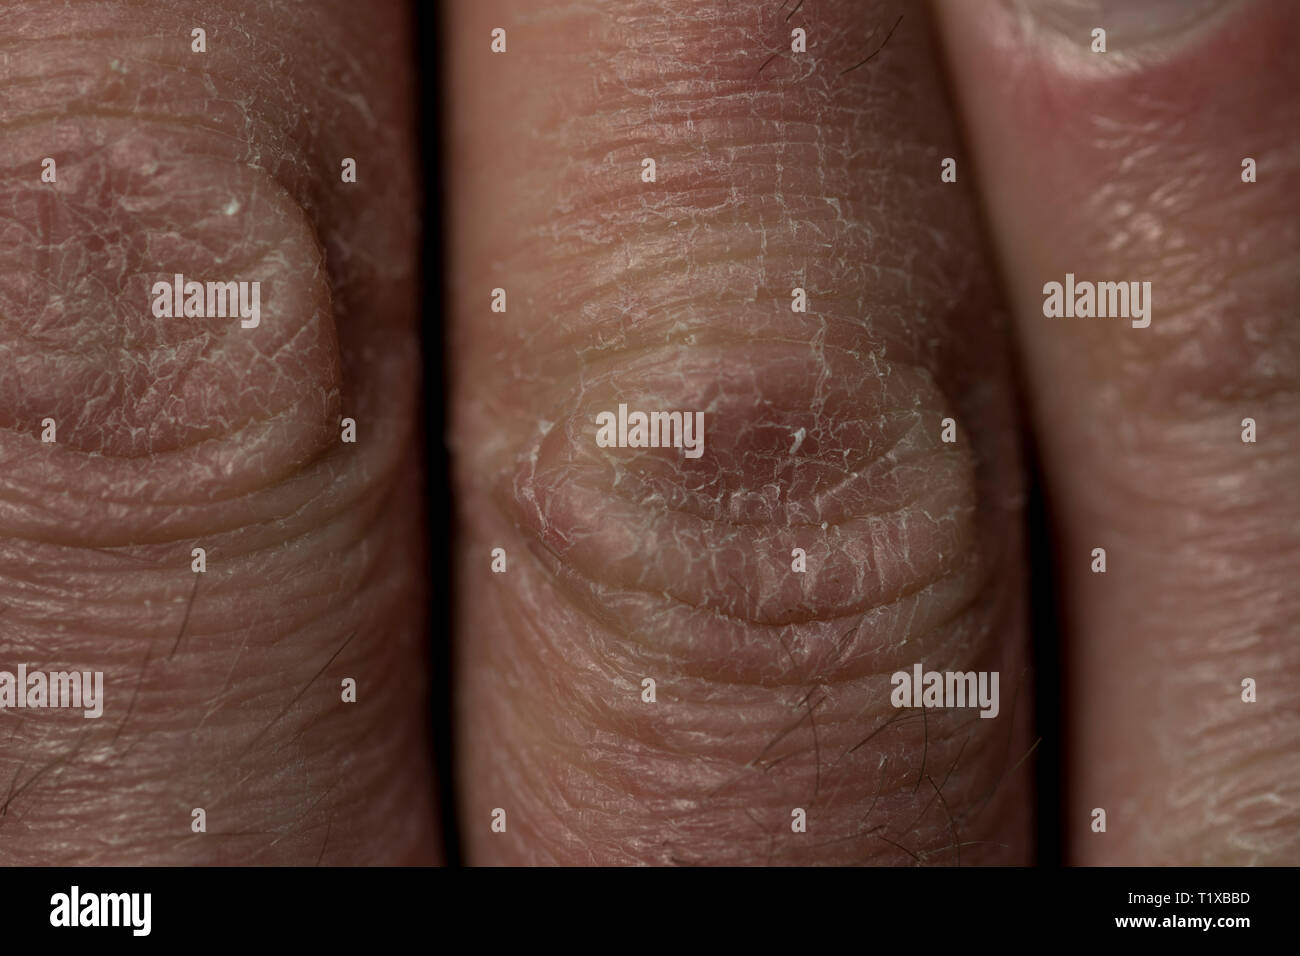 Dry Skin Close Up Knuckles With Scaling Dry Skin Damage Eczema Dry Skin Up Close On Human Hand Stock Photo Alamy